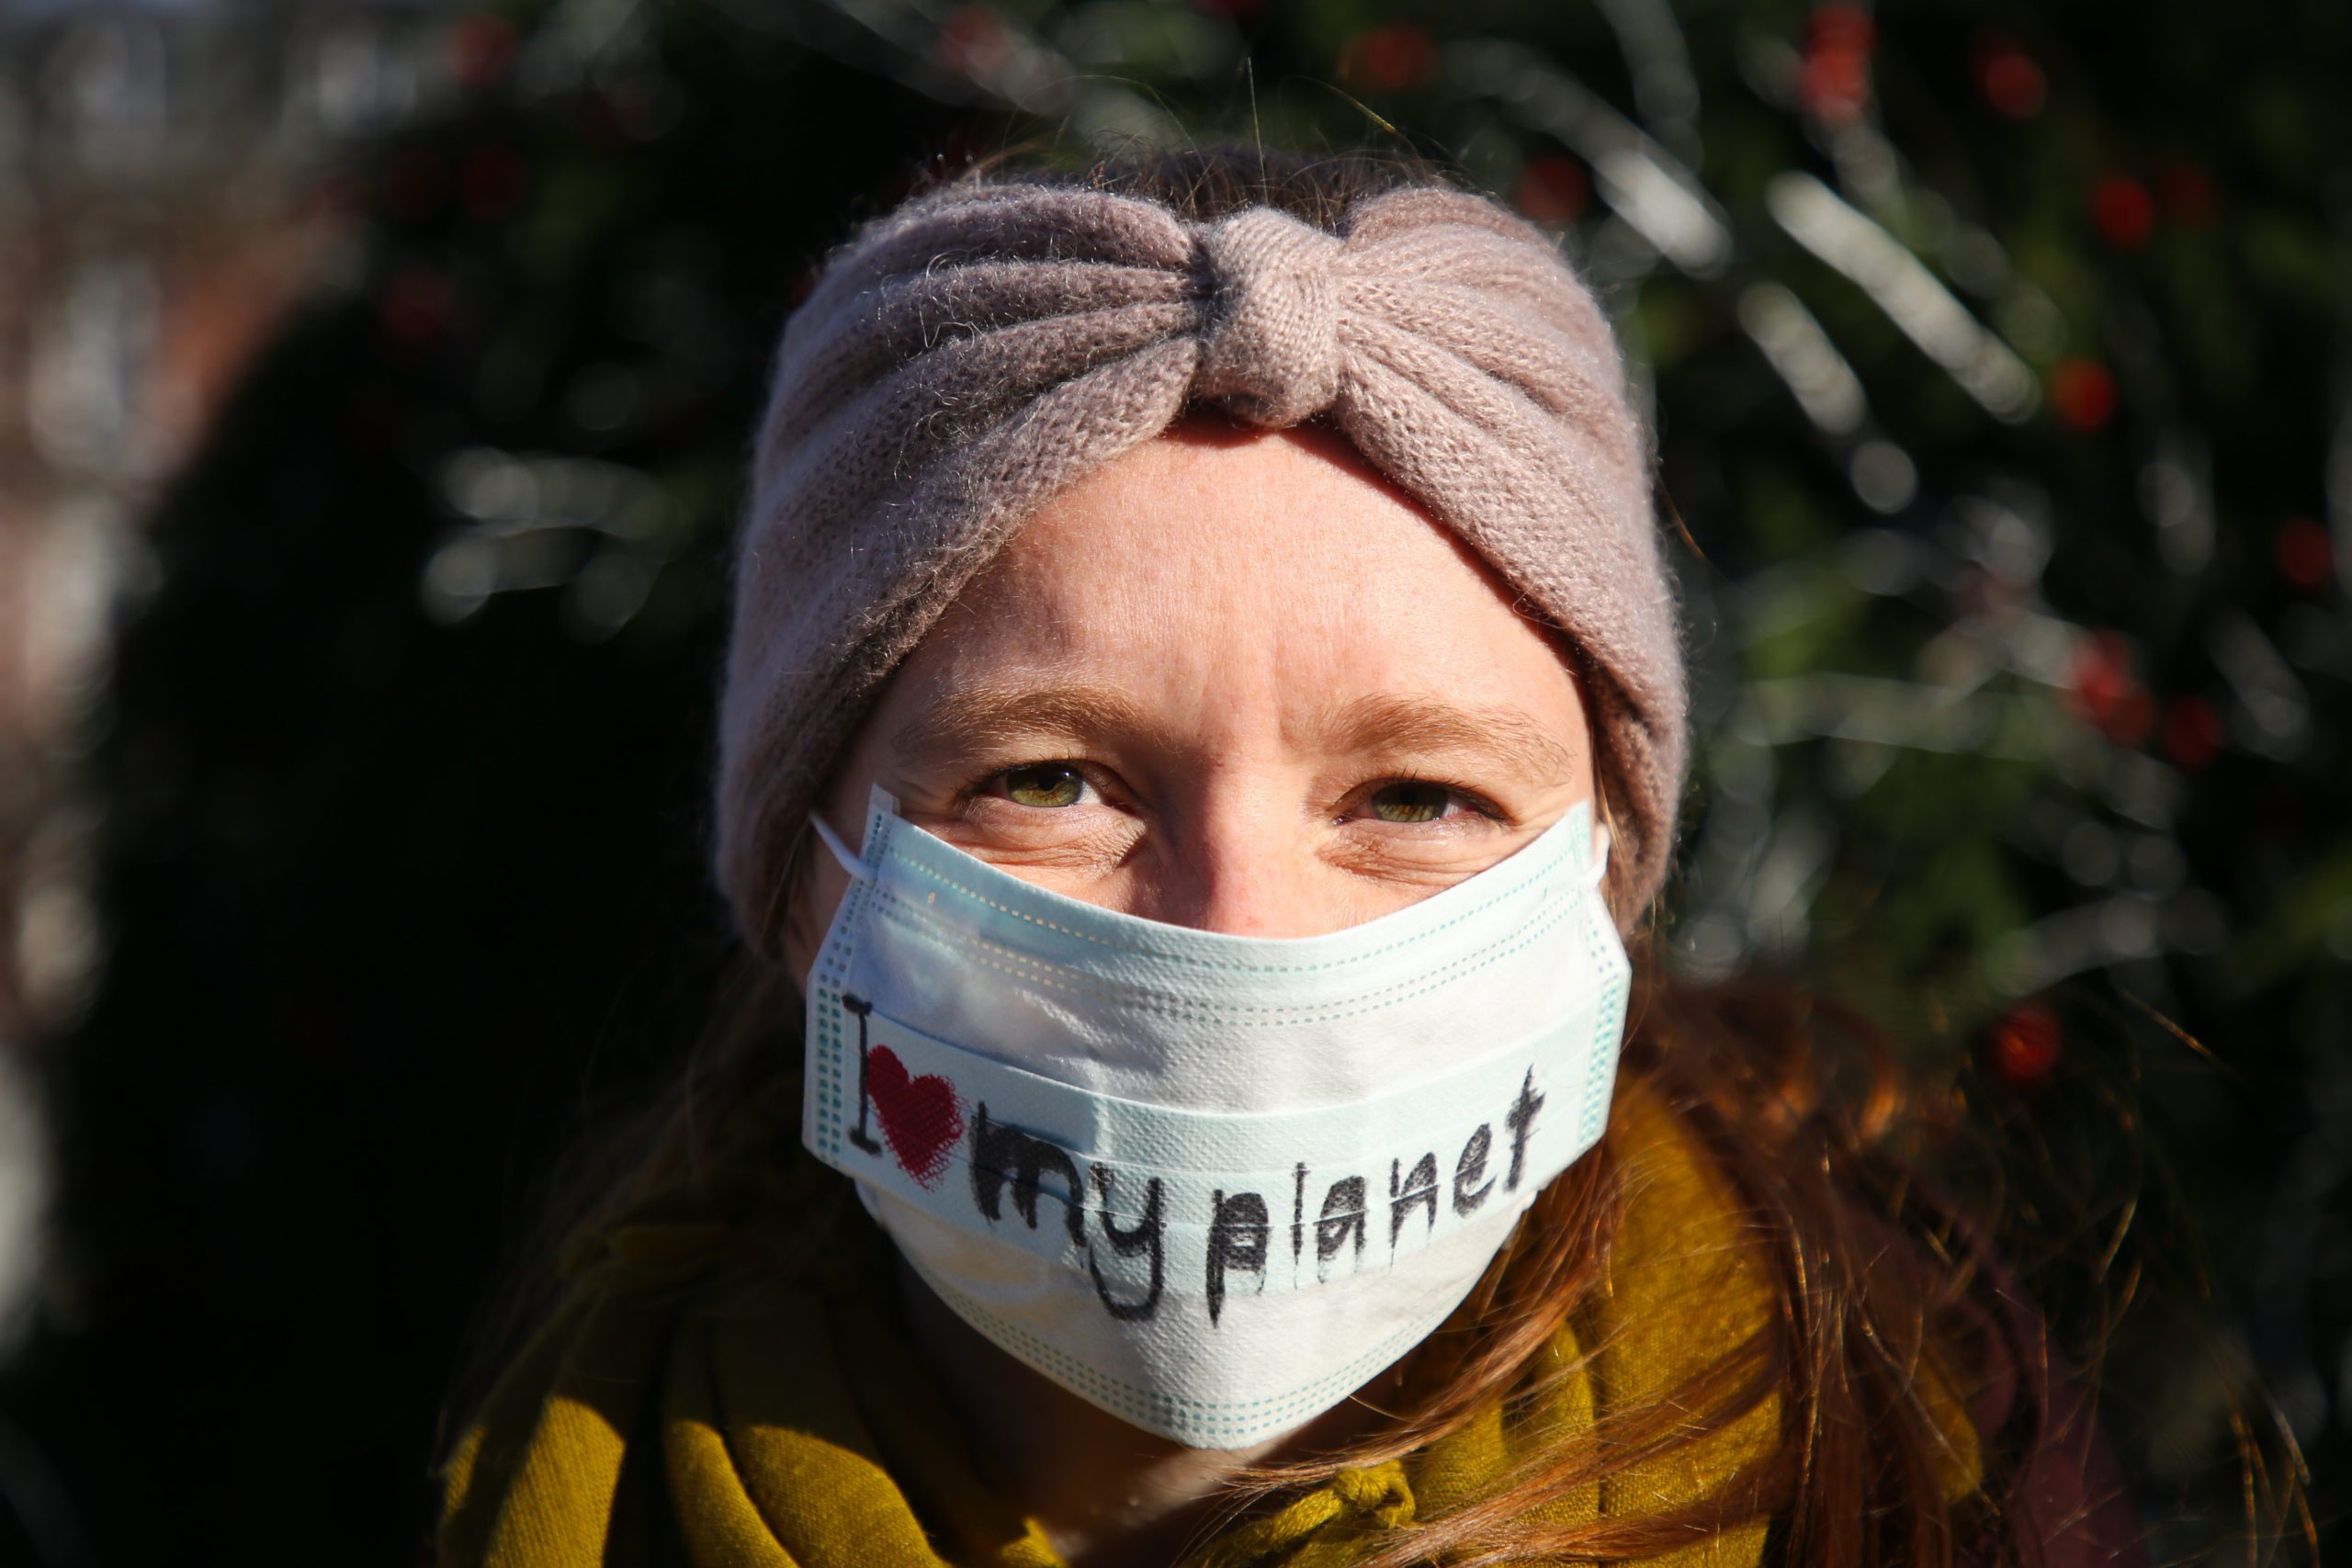 COP24 March For Climate In Katowice